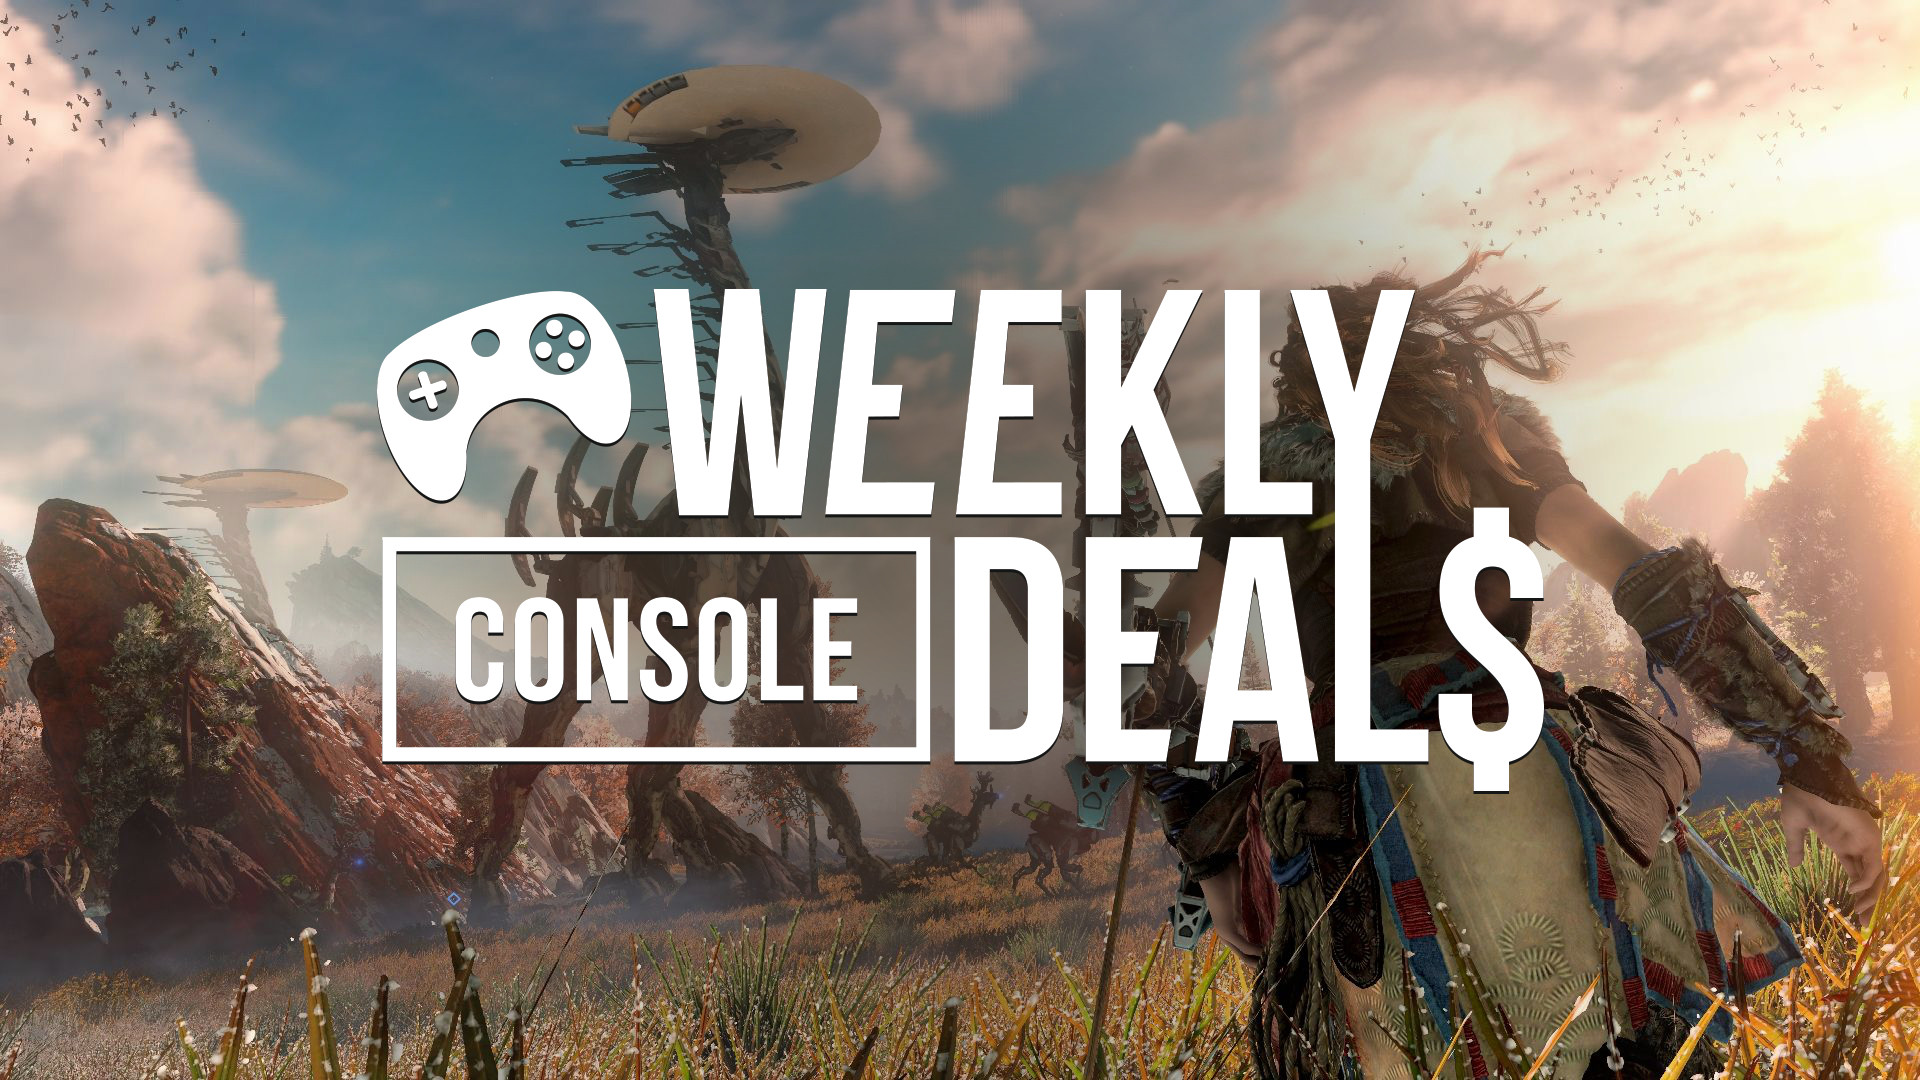 Weekend Console Download Deals for Apr. 23: Free Horizon ...